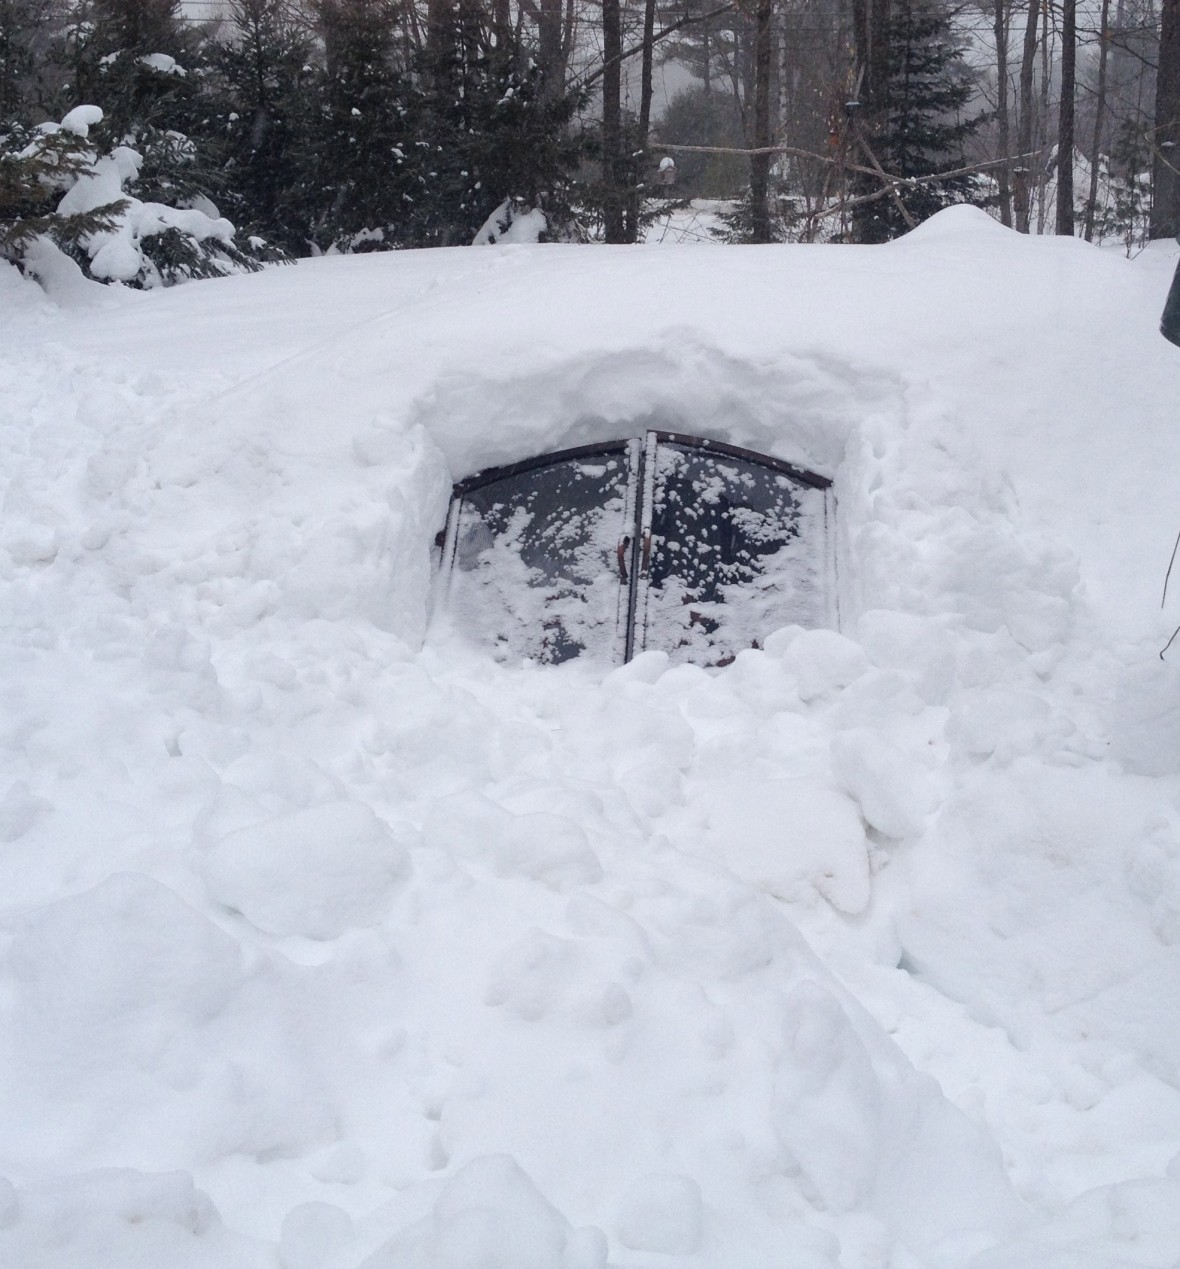 Every great snow fort needs a classy door.